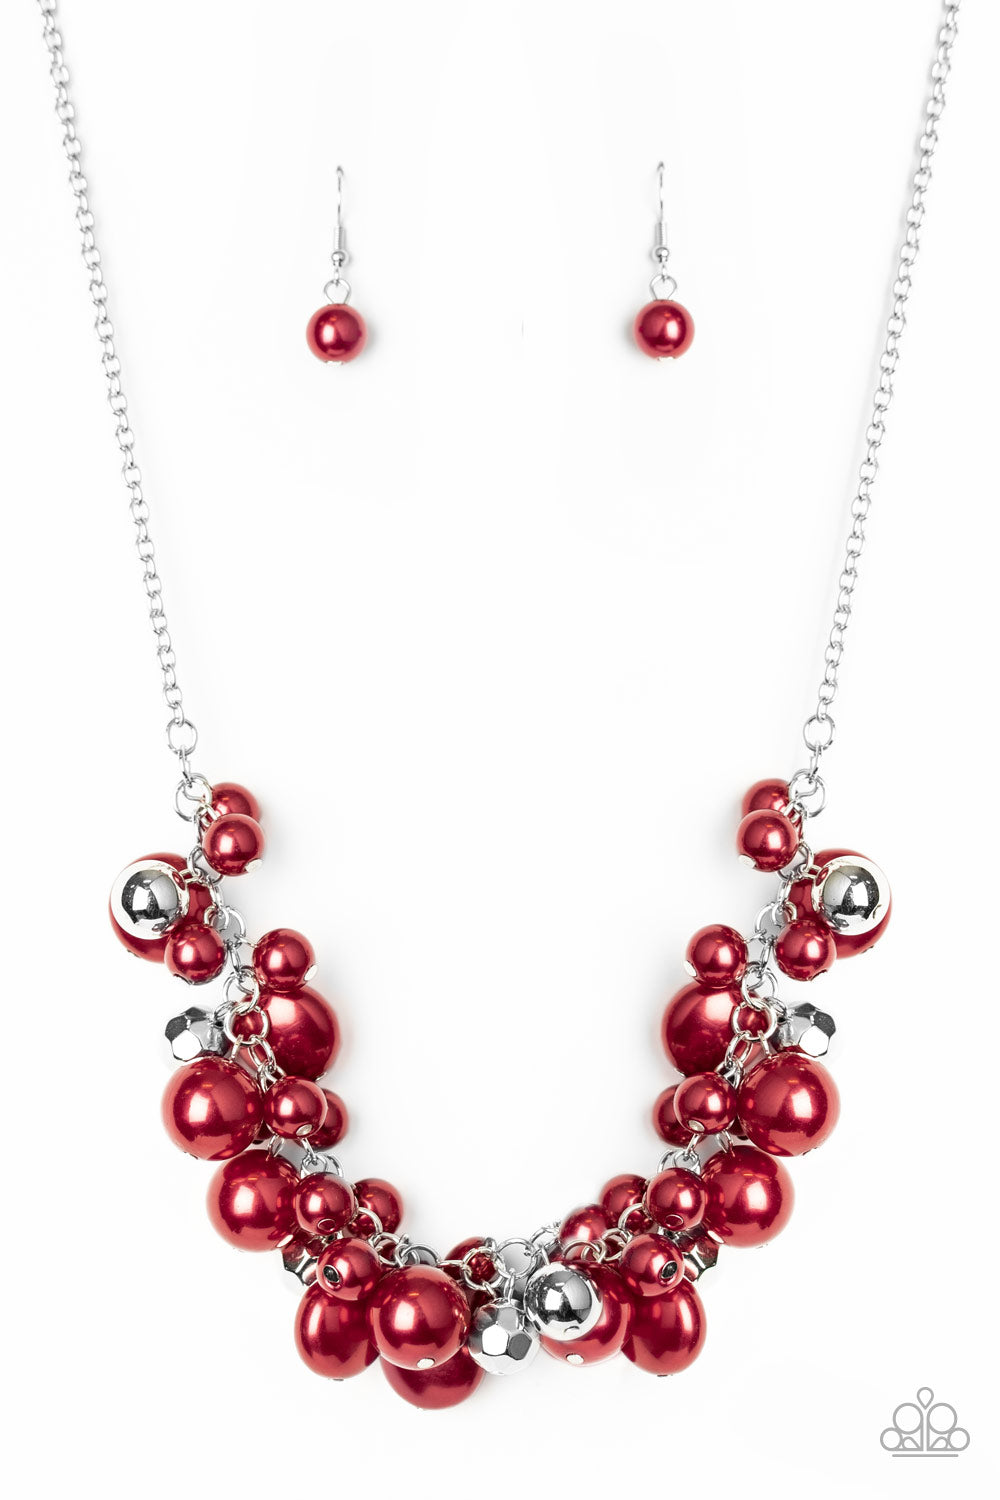 Paparazzi Necklace ~ Battle of the Bombshells - Red